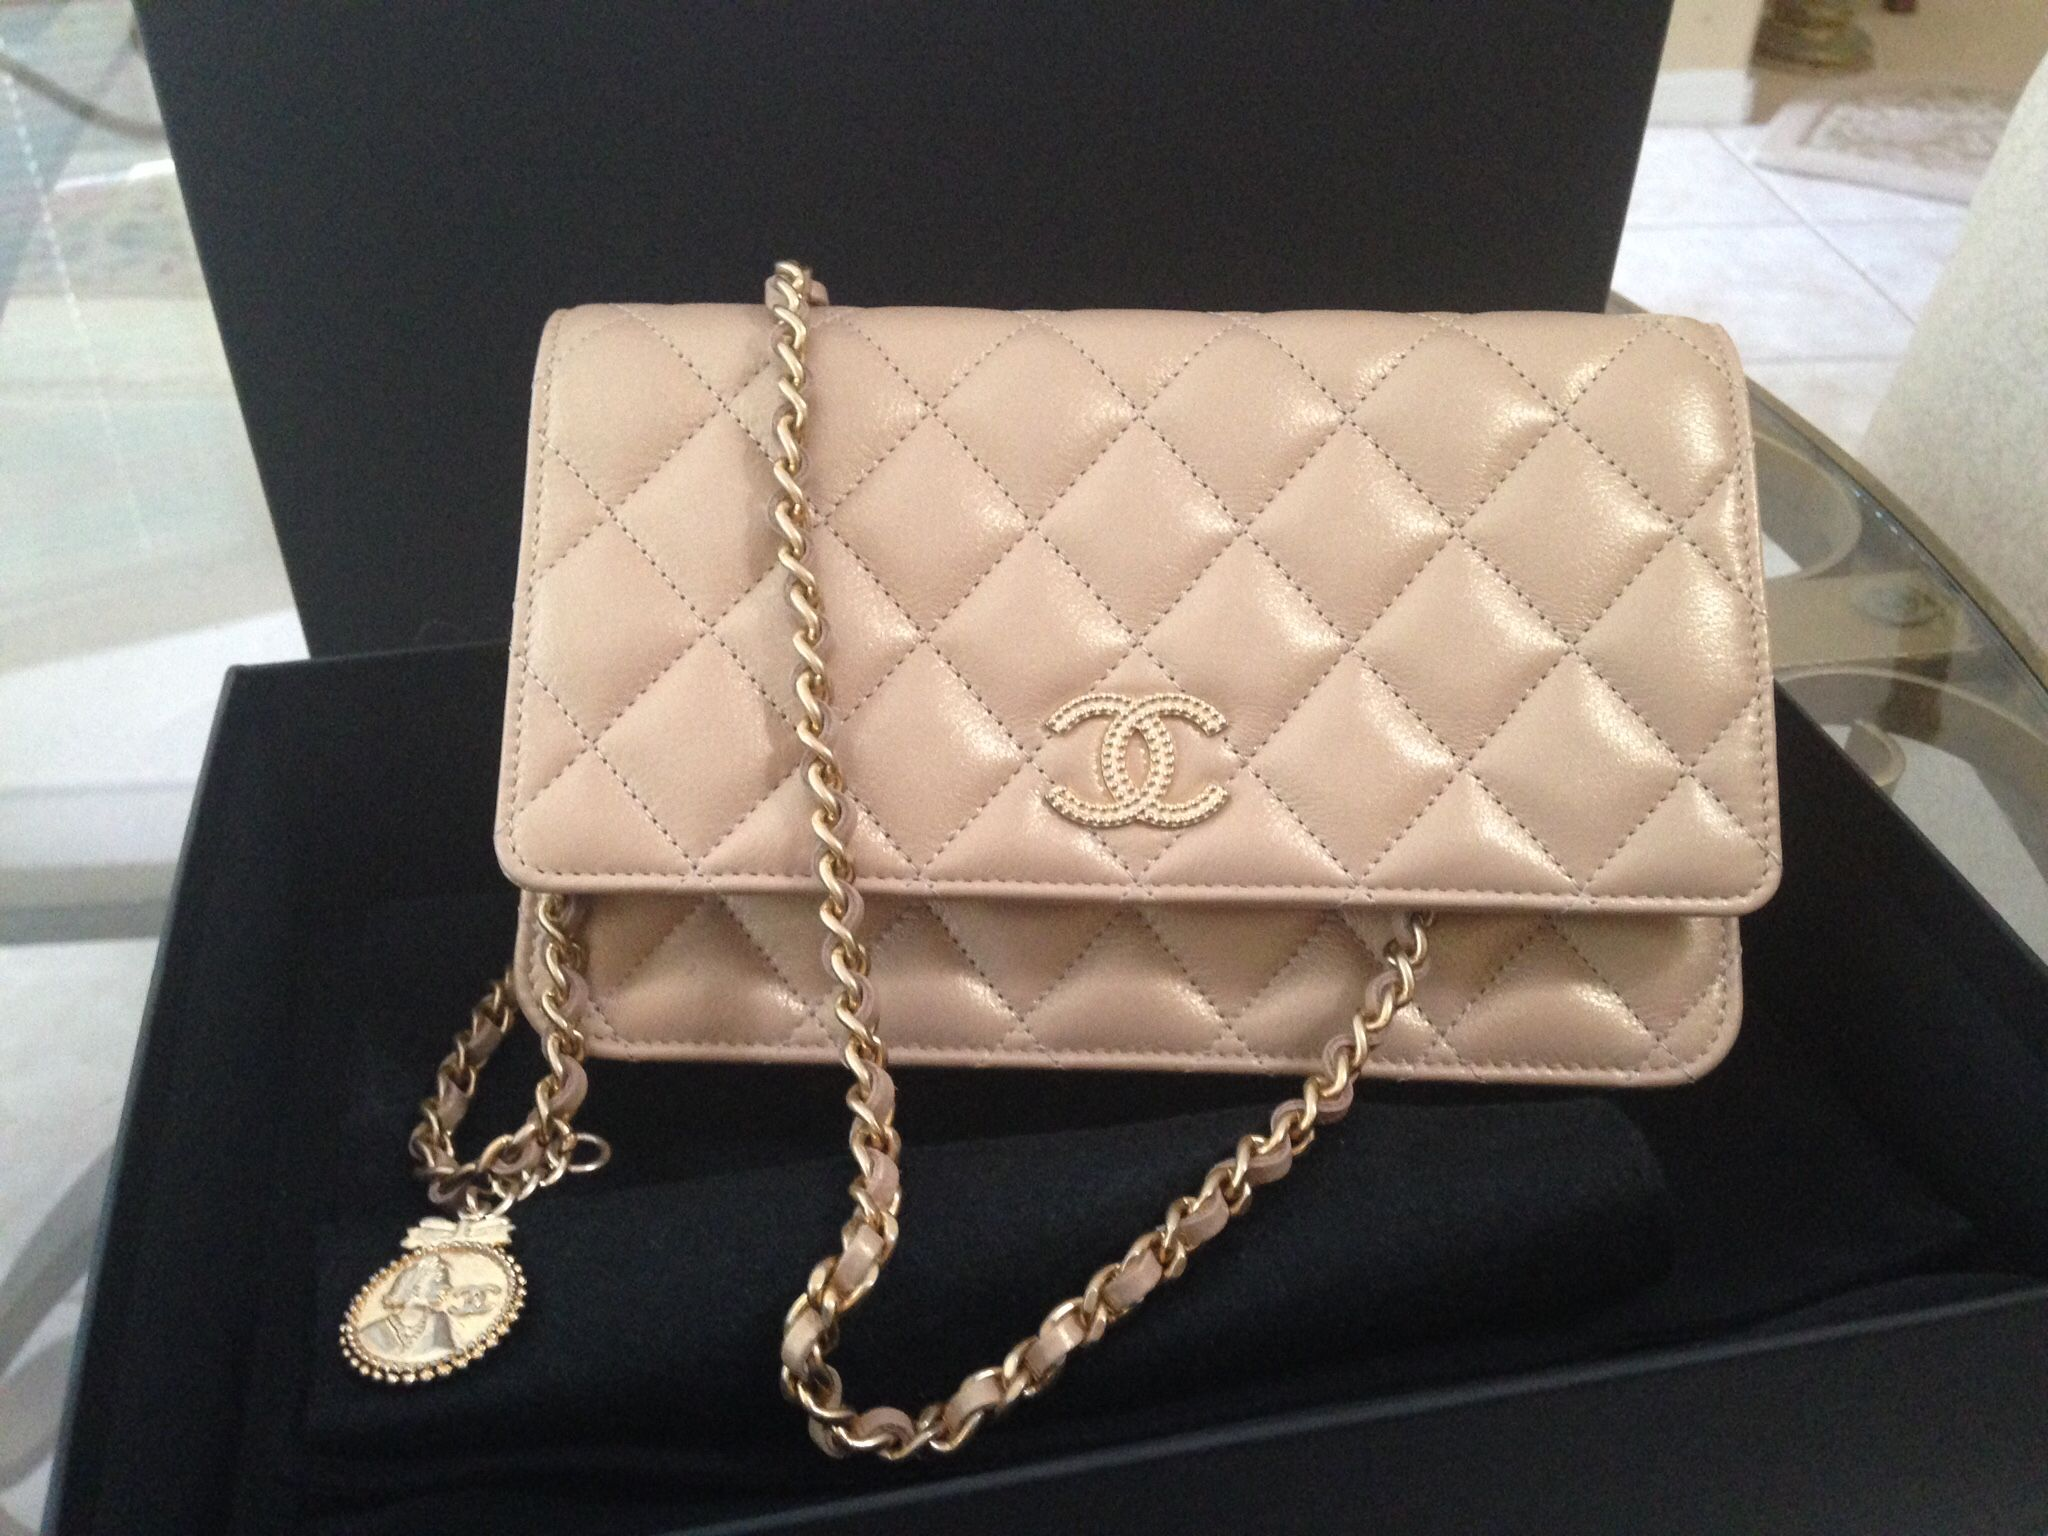 Chanel Pearly Beige Champagne WOC with Coco Chanel Medallion ... c712116850570